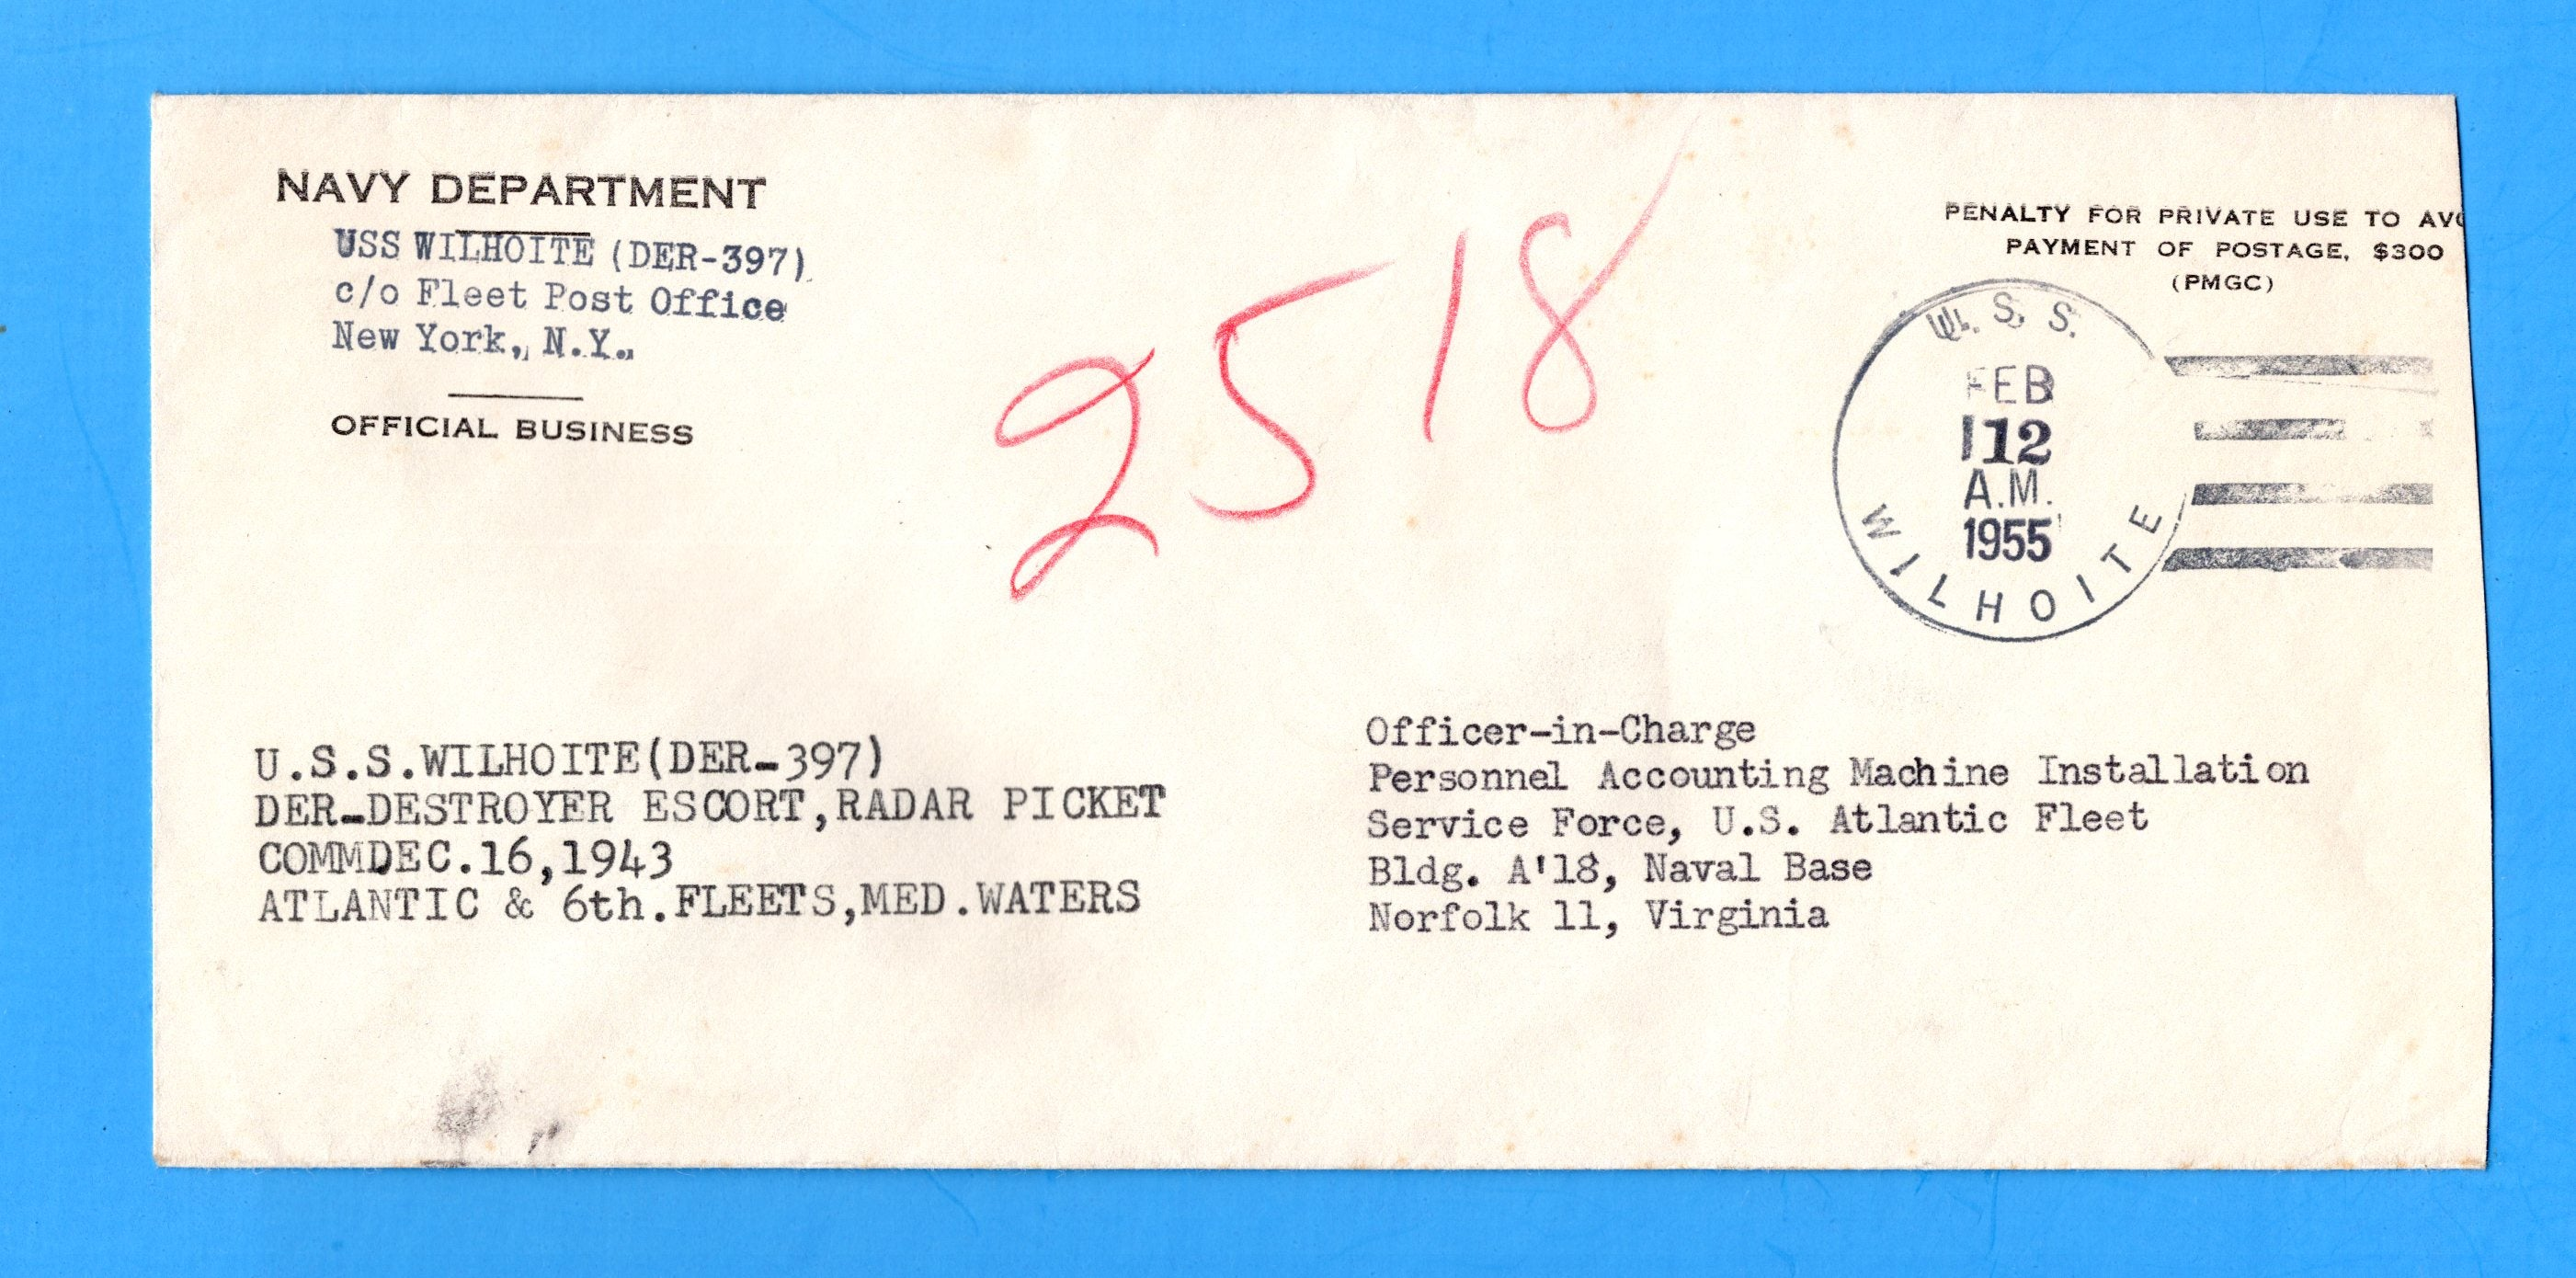 USS Wilhoite DER-397 Navy Department Official Mail February 12, 1955